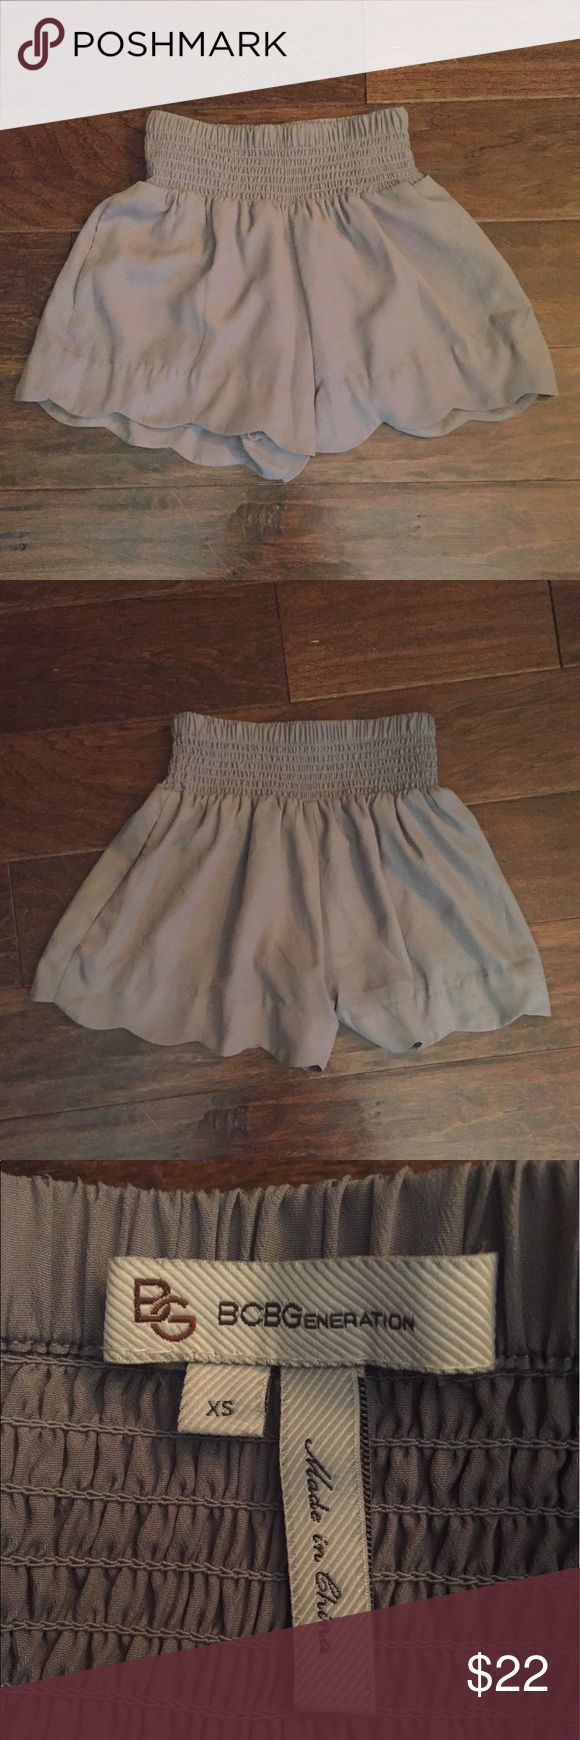 BCBGeneration shorts Cute shorts with scalloped edge. Fitted waist. Pockets BCBGeneration Shorts